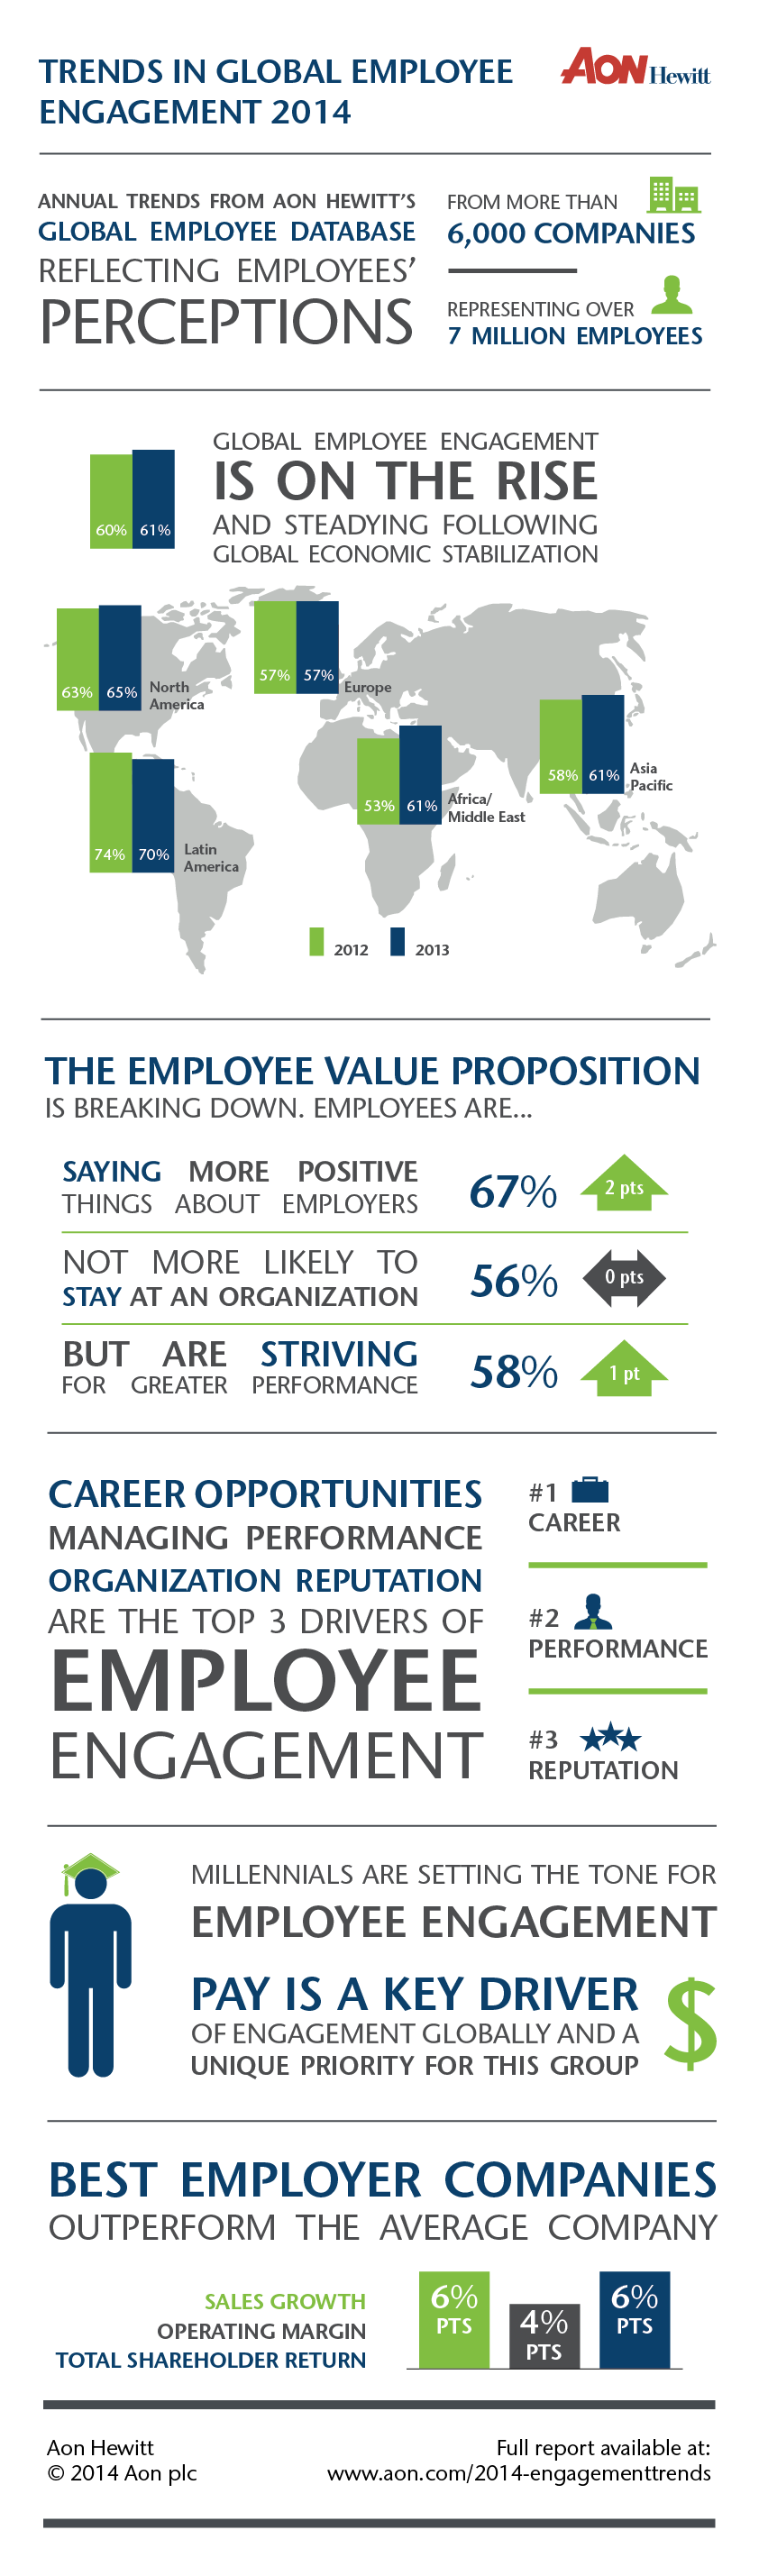 2014 global employee engagement trends infographic